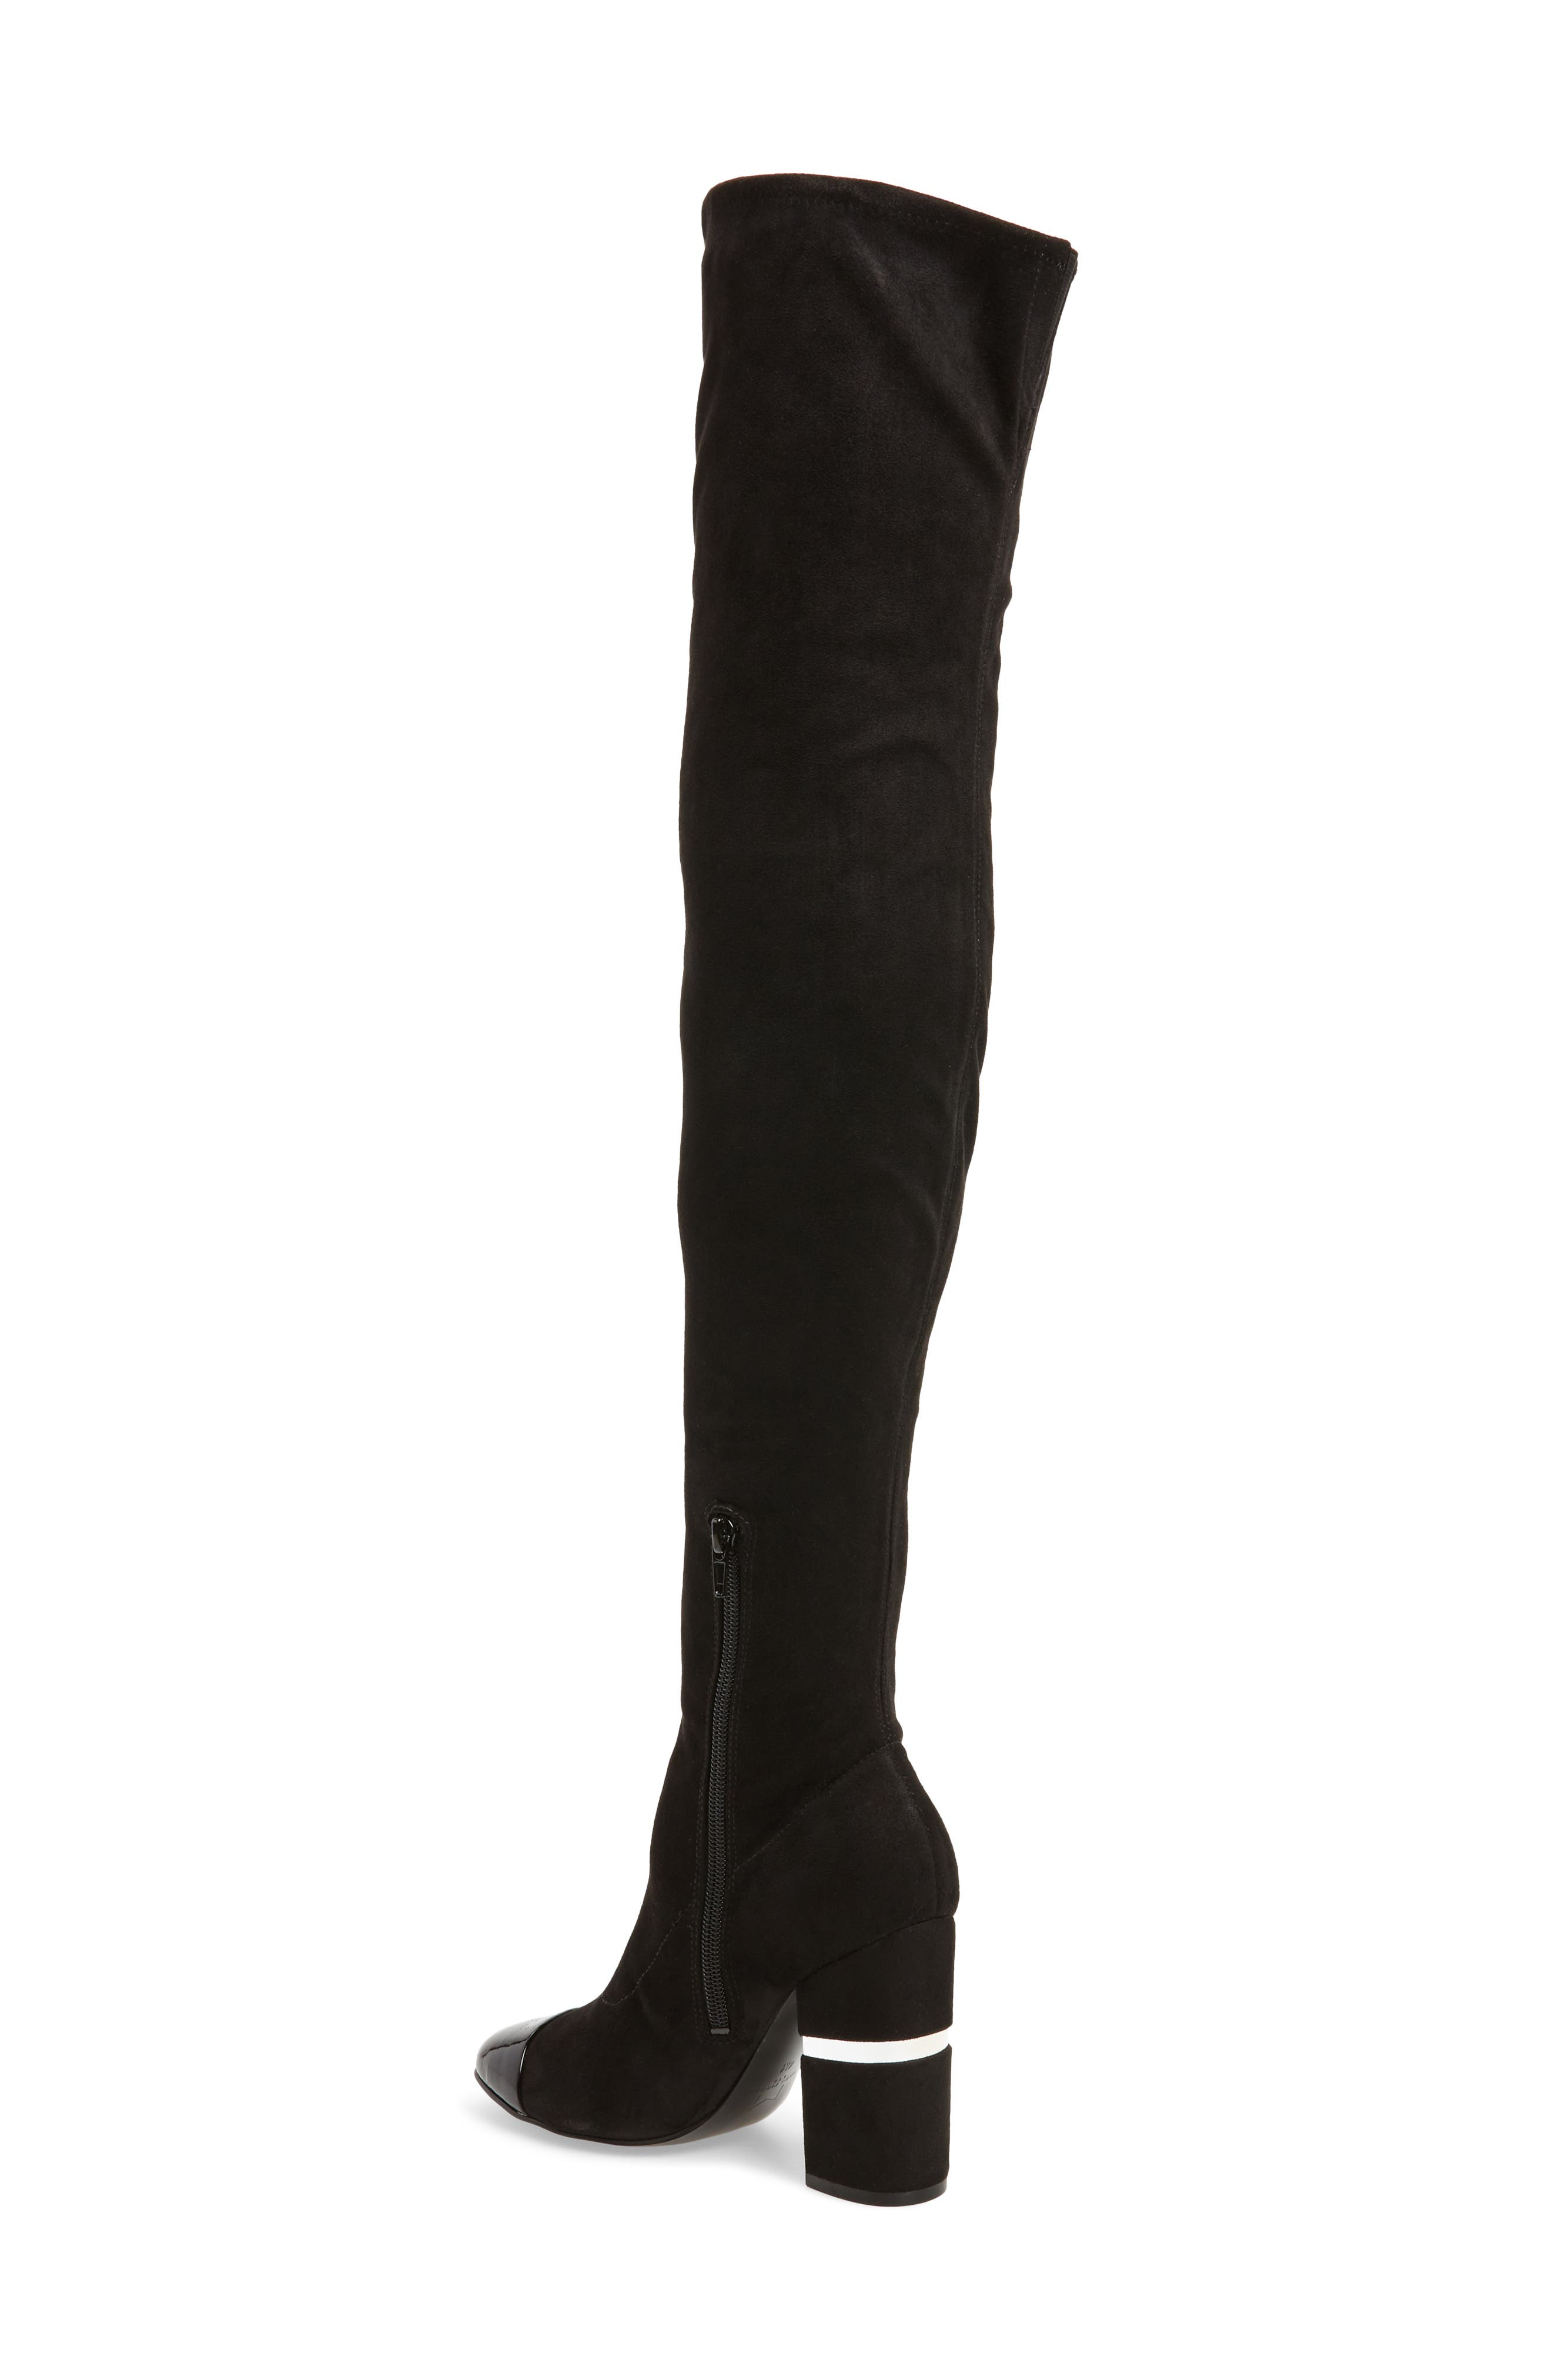 Petel Over the Knee Boot,                             Alternate thumbnail 2, color,                             Black Faux Suede